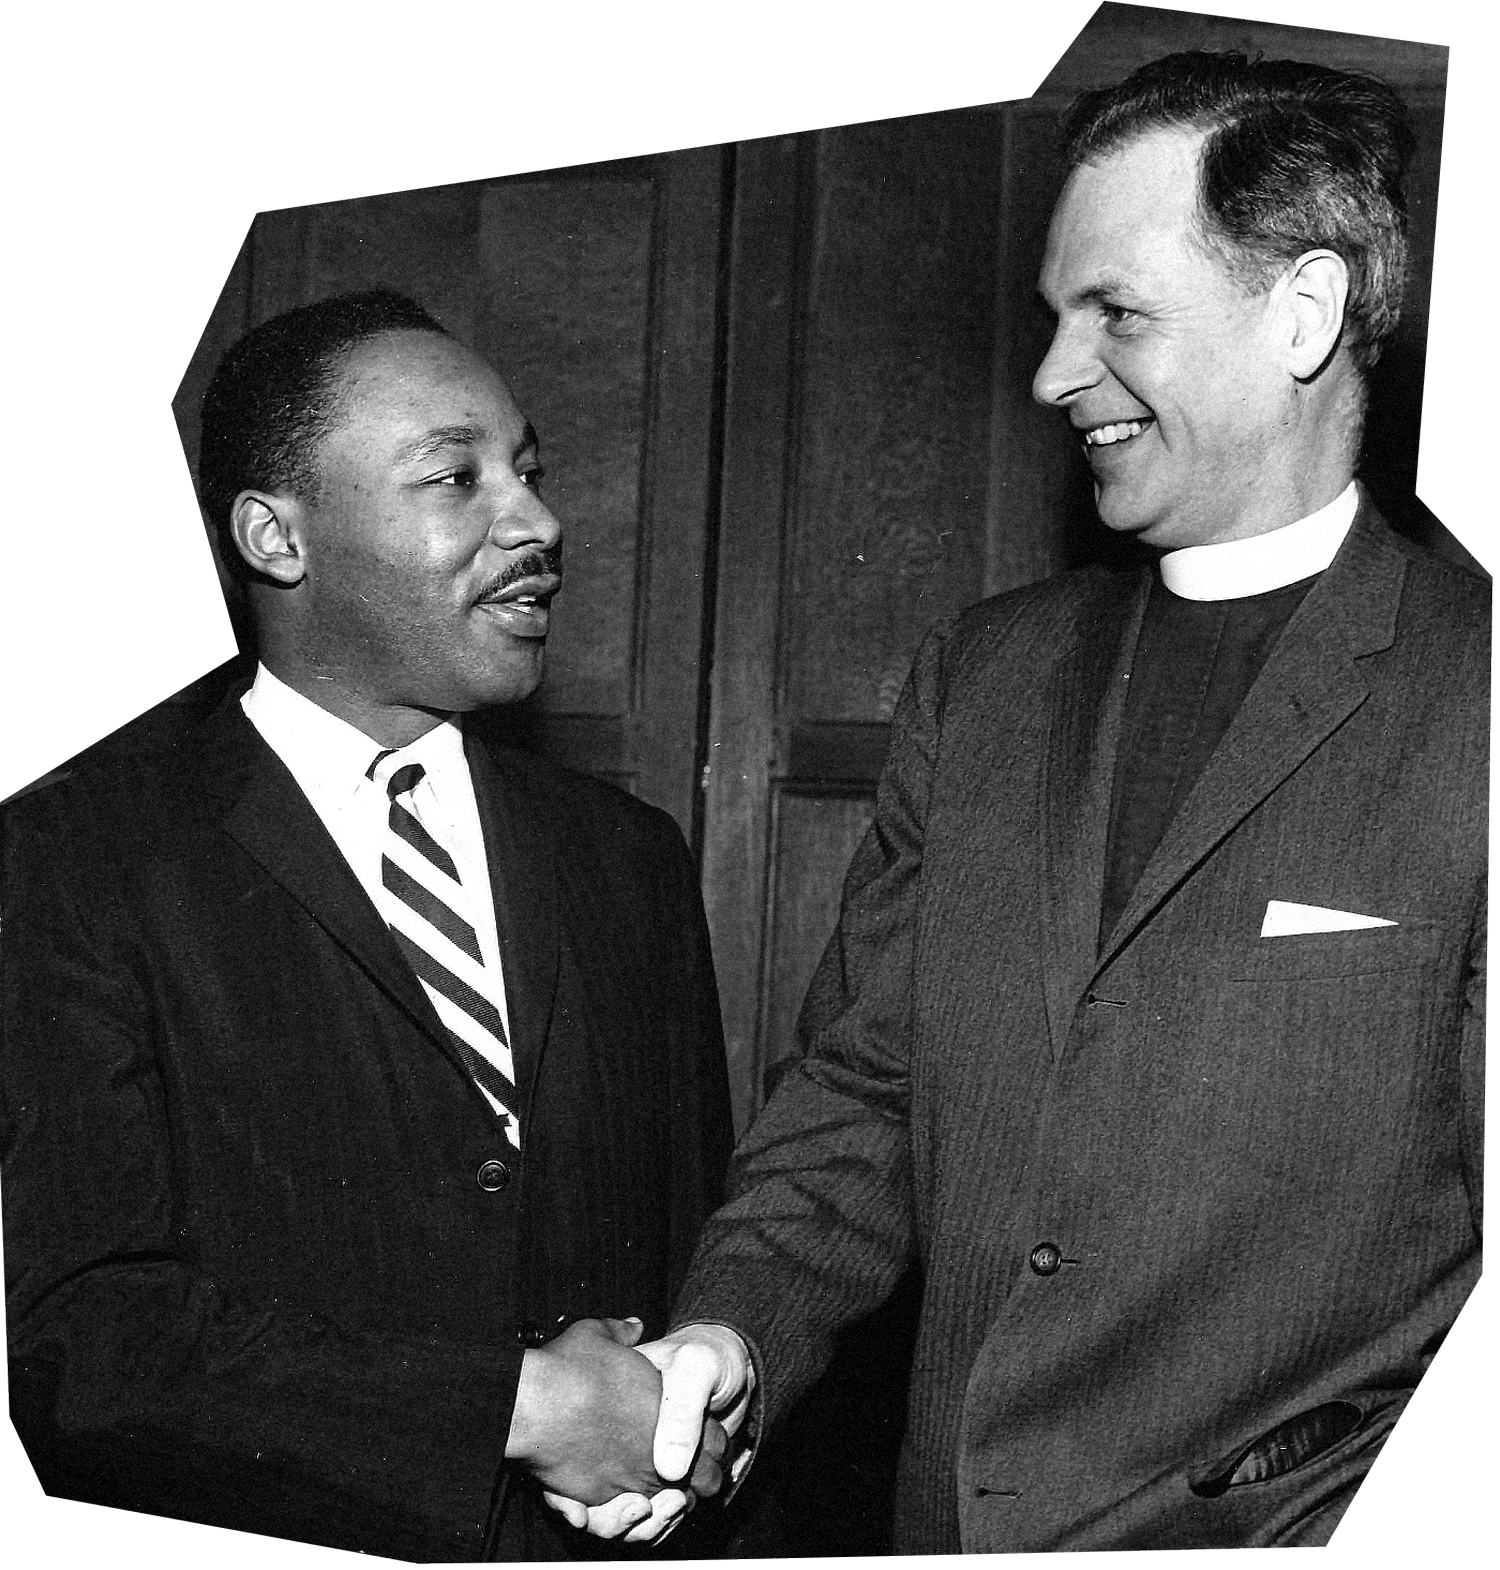 Martin Luther King, Jr. speaking with Dean of the Chapel Ernest Gordon in 1960.